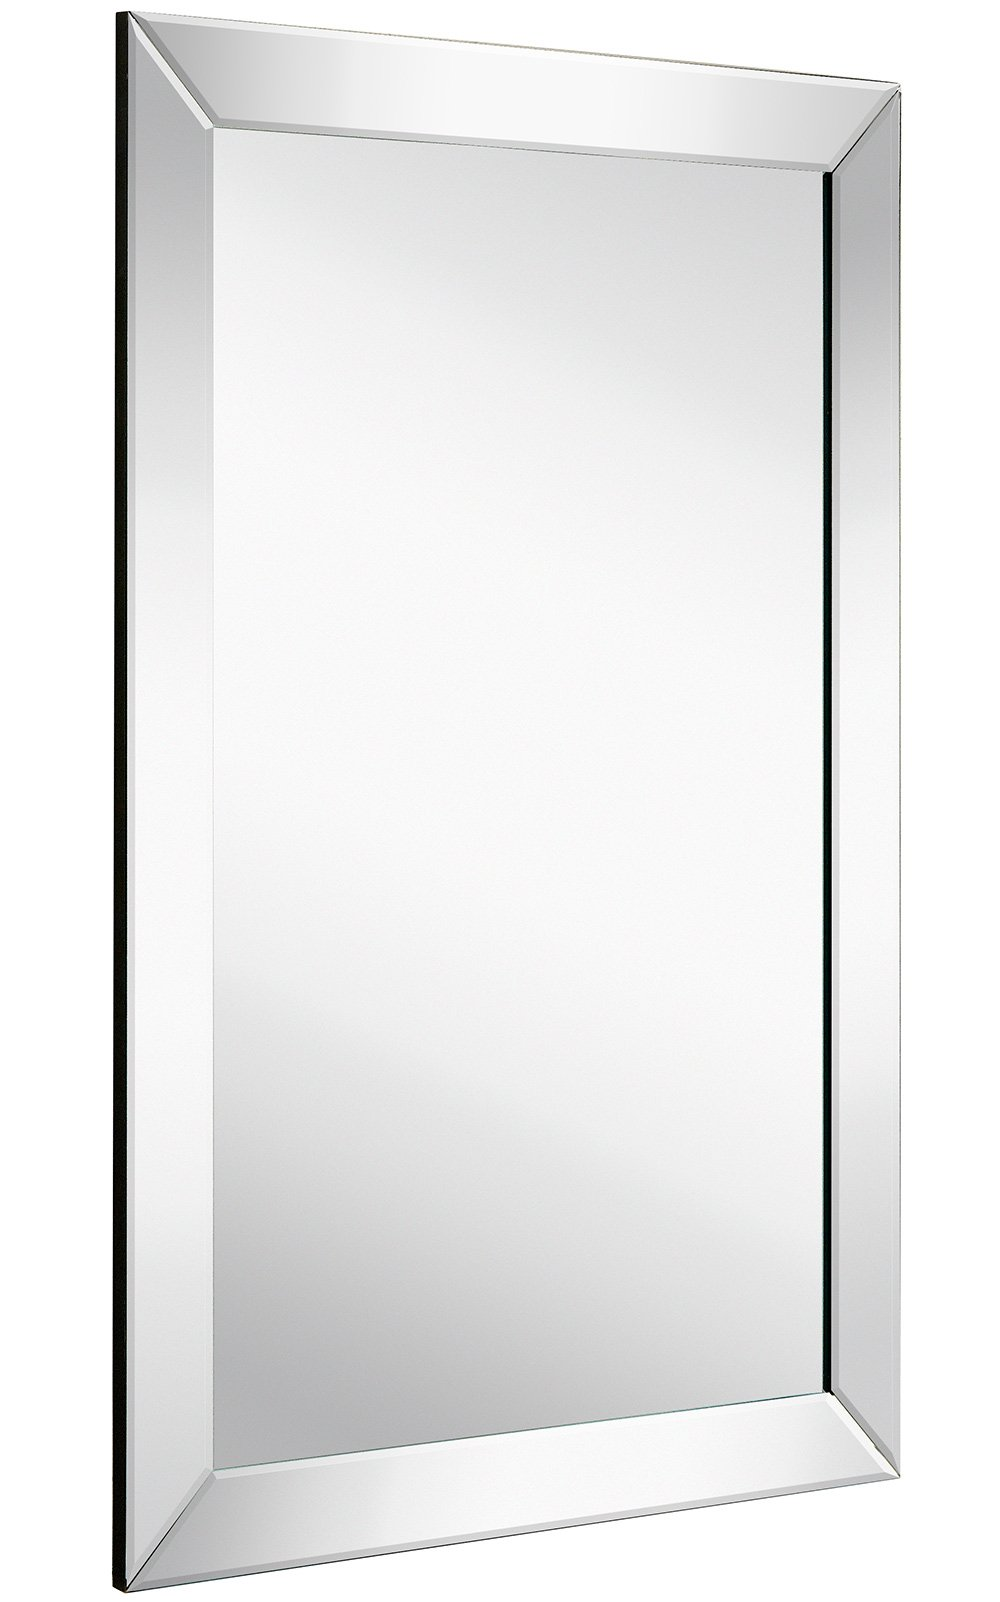 Large Flat Framed Wall Mirror with 2 Inch Edge Beveled Mirror Frame | Premium Silver Backed Glass Panel | Vanity, Bedroom, or Bathroom | Mirrored Rectangle Hangs Horizontal or Vertical (20'' x 30'')